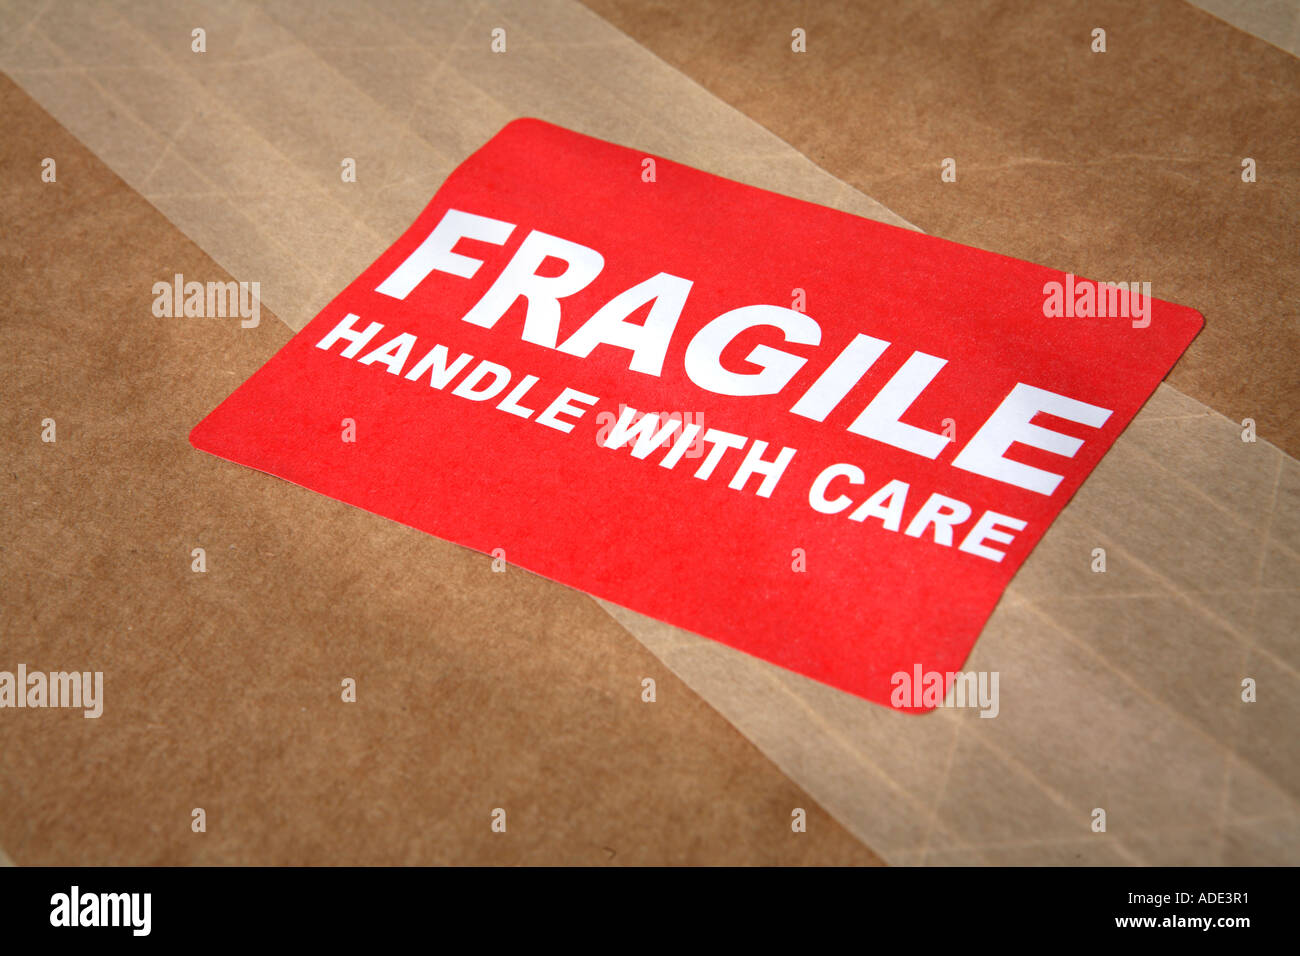 Package with FRAGILE sticker - Stock Image